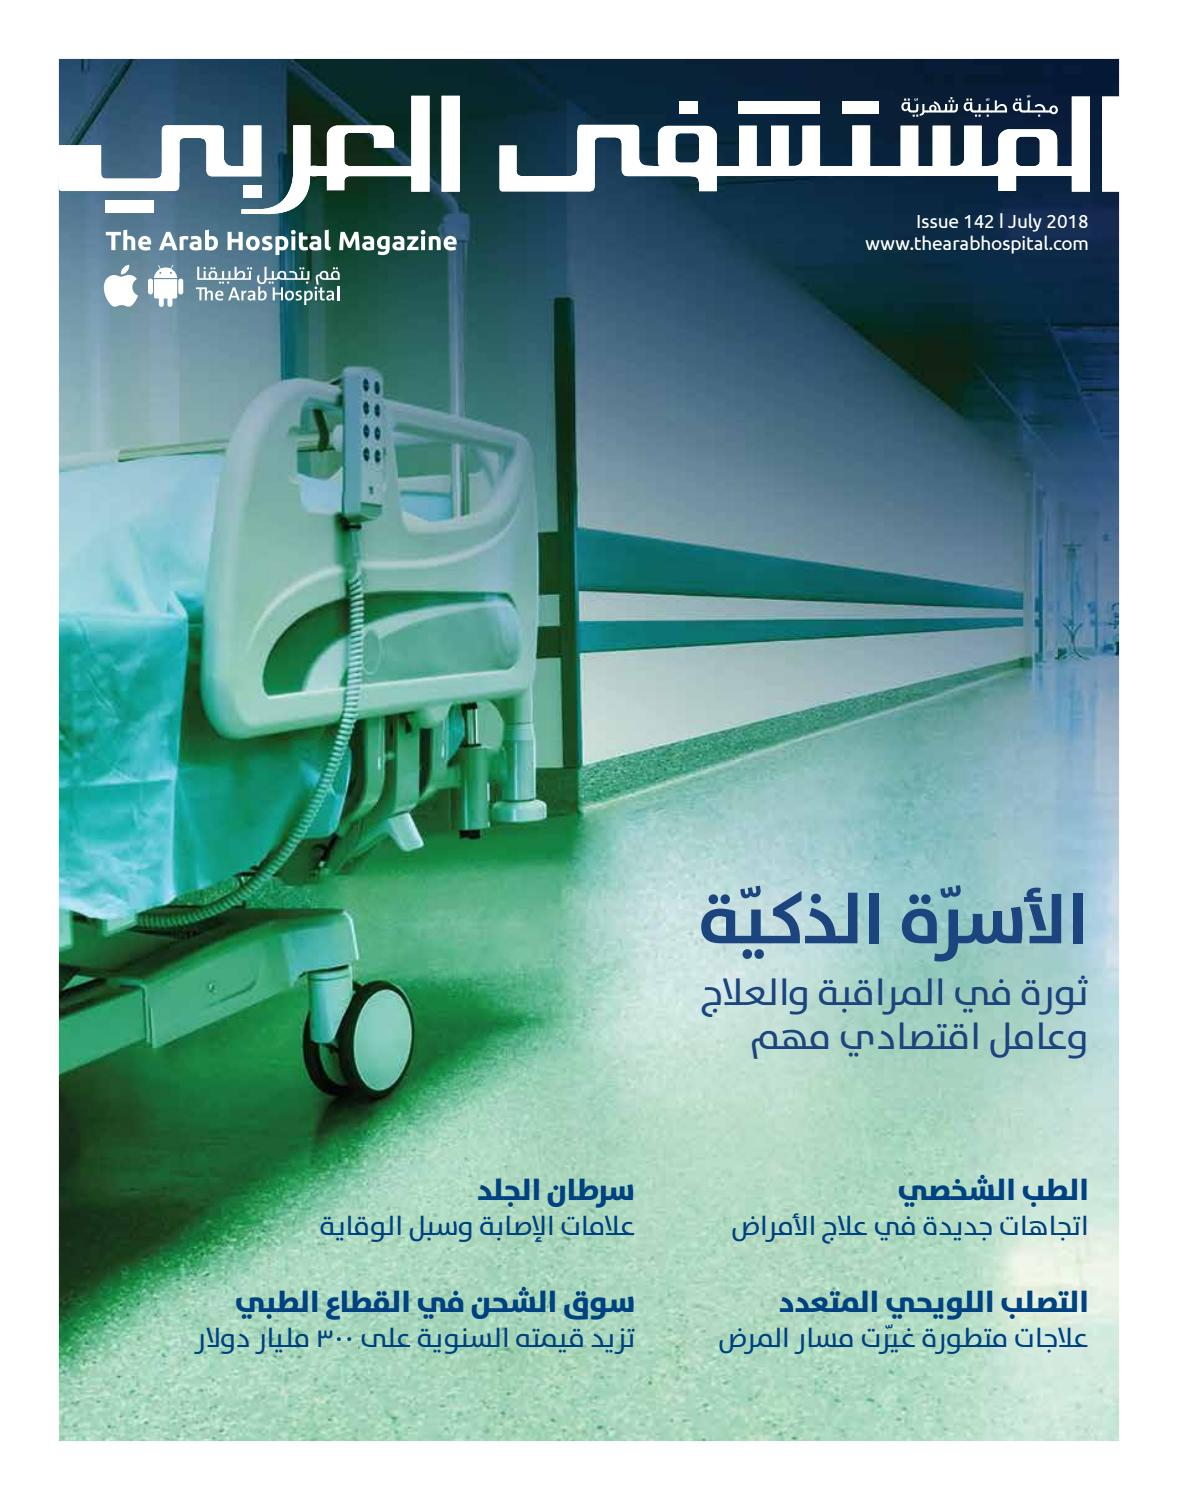 d12831d06a412 The Arab Hospital Magazine issue 142 by The Arab Hospital Magazine - issuu